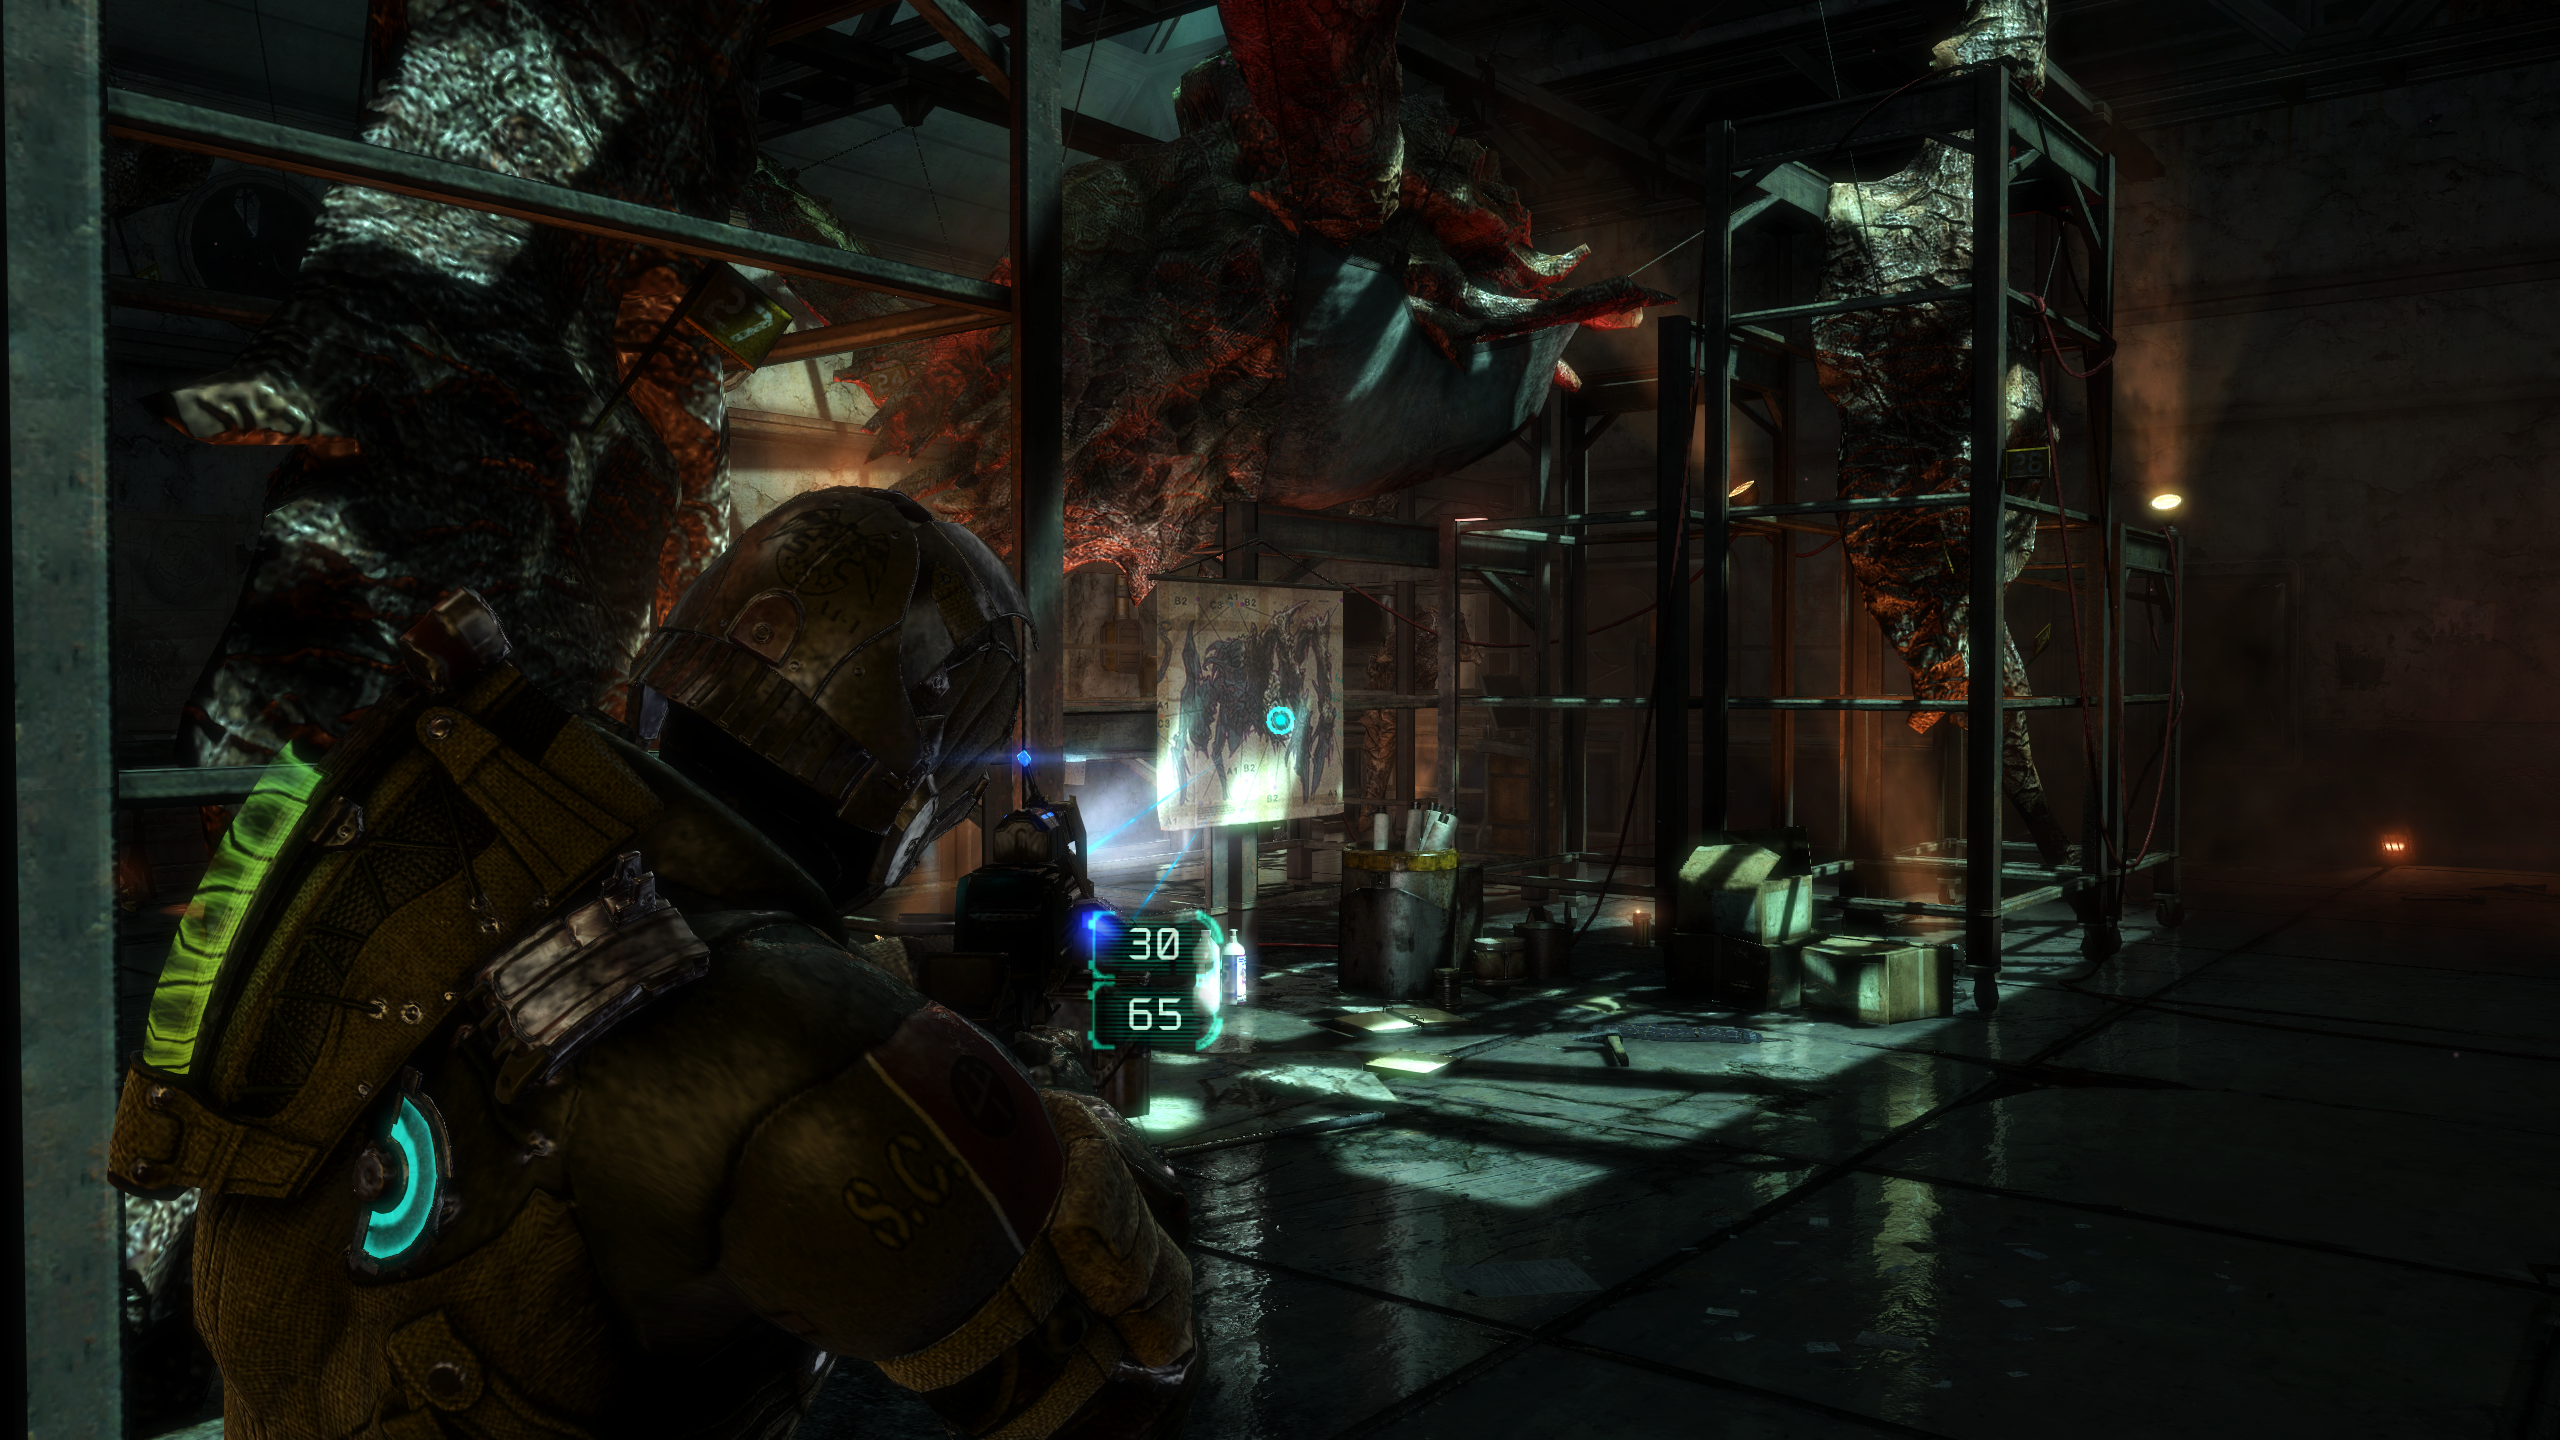 deadspace32013-09-062oxsfq.png